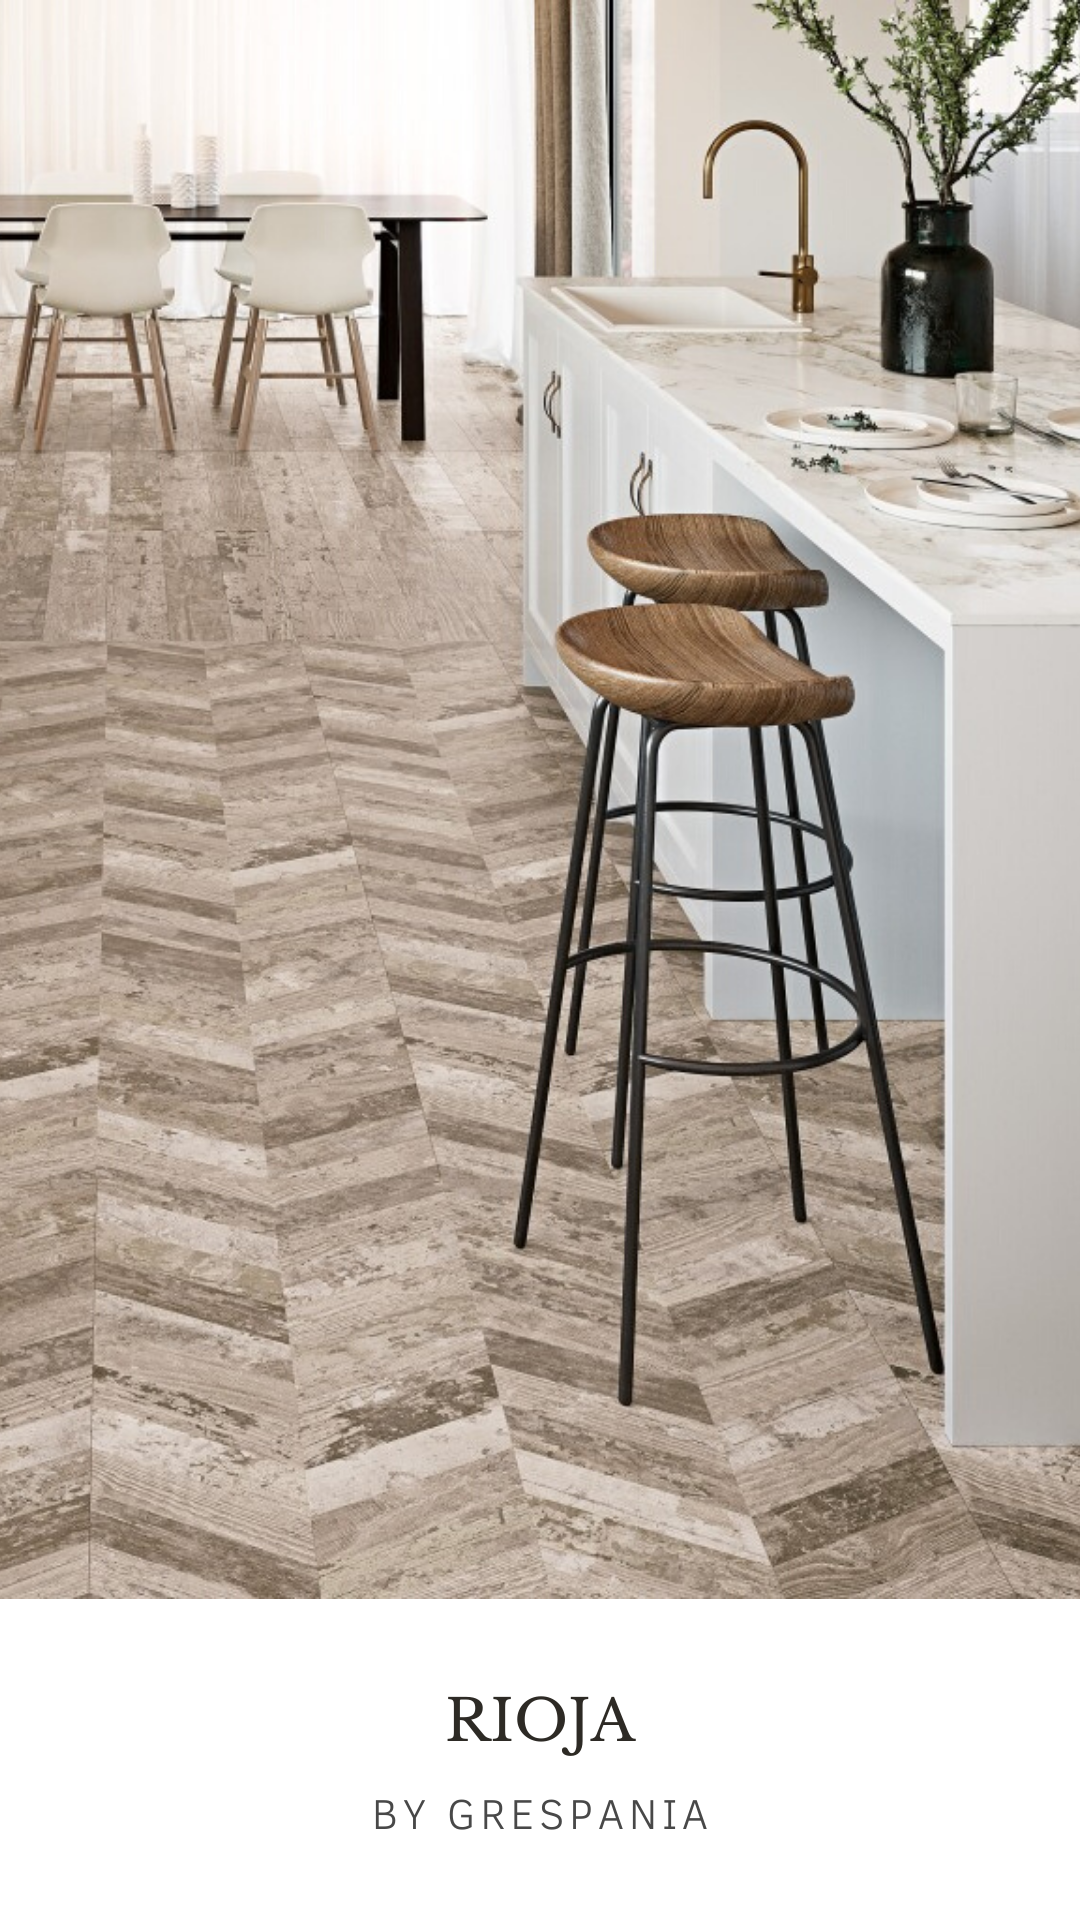 One Of The Most Hygienic Resistant And Durable Options For The Kitchen Flooring Is Wood Porcelain Tile Grespan In 2020 Style Tile Design Your Kitchen Kitchen Trends